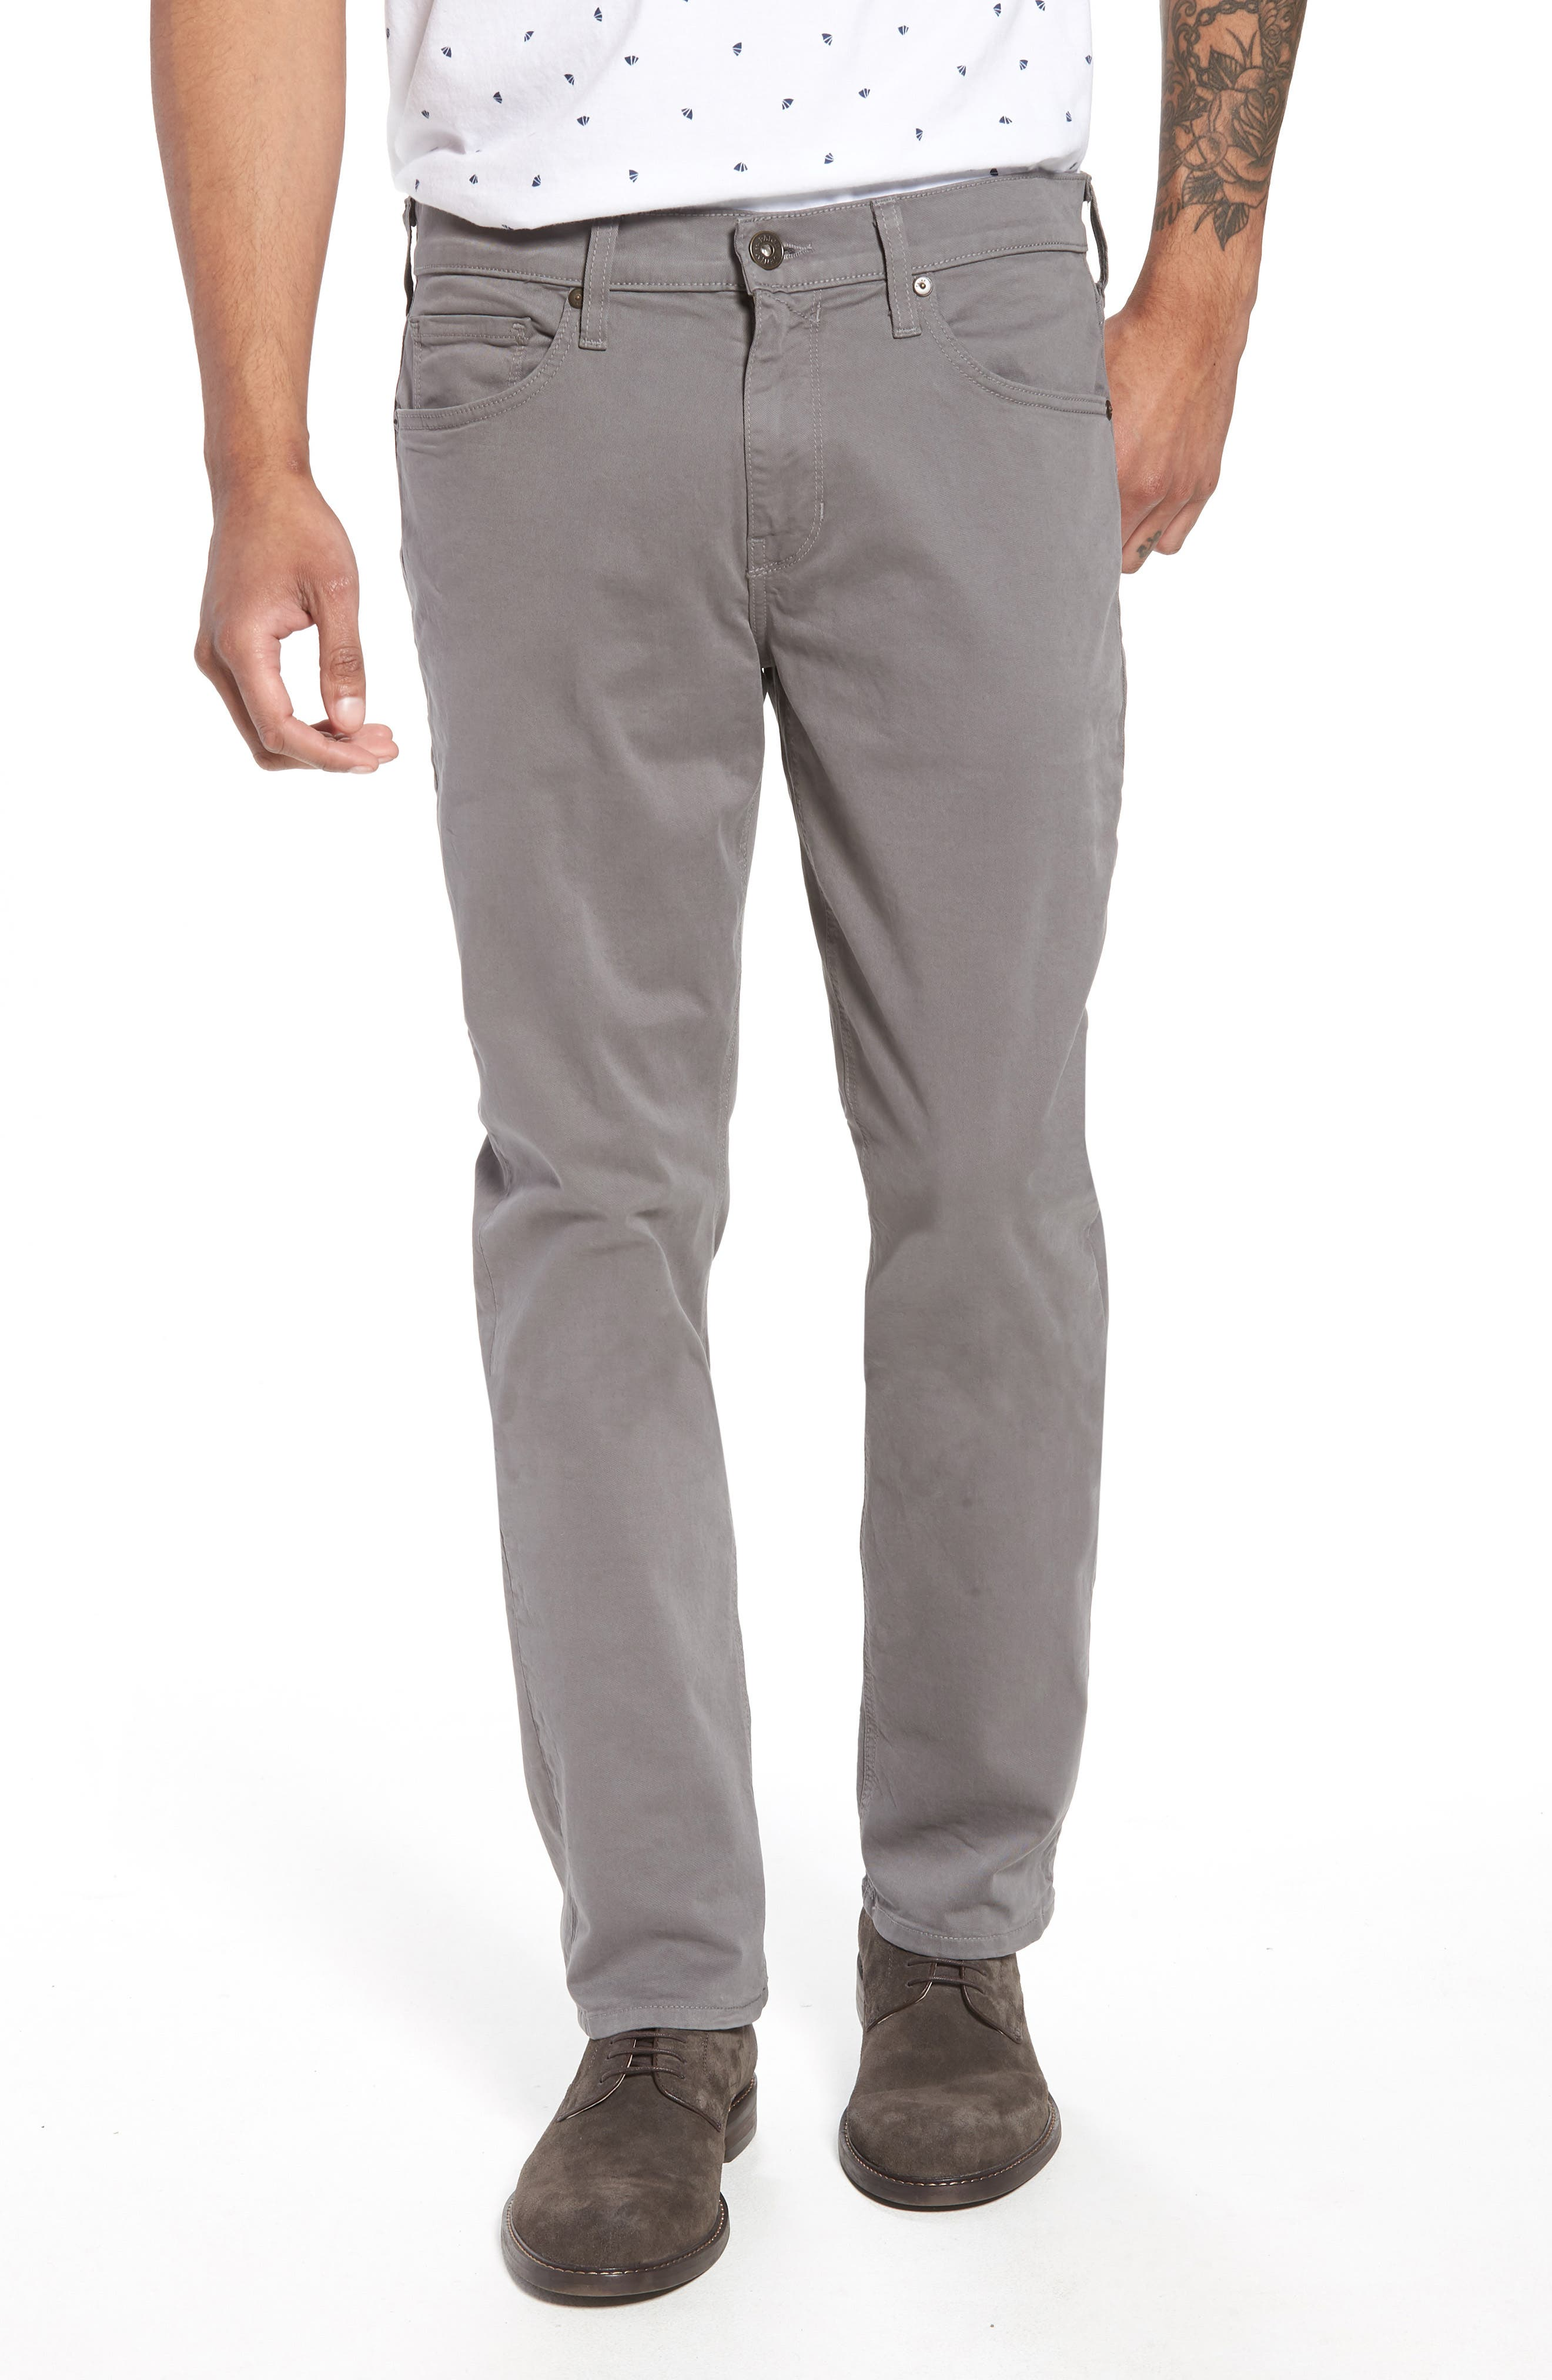 'Federal' Slim Straight Leg Twill Pants,                             Main thumbnail 1, color,                             022